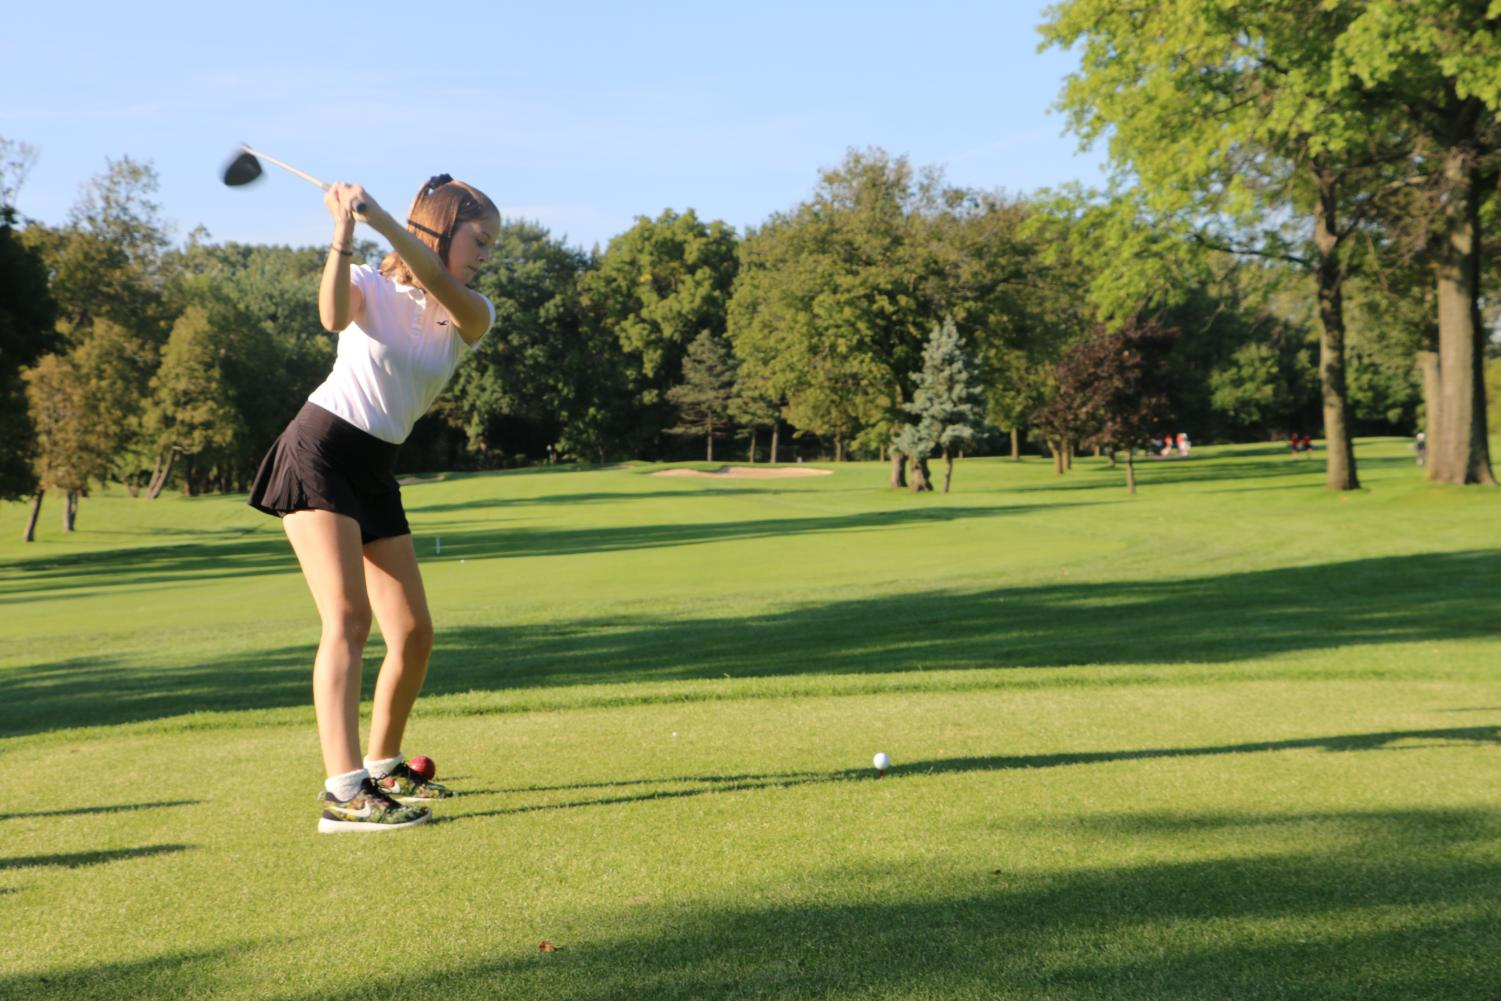 Anna Flynn teeing off the ball with a driver.